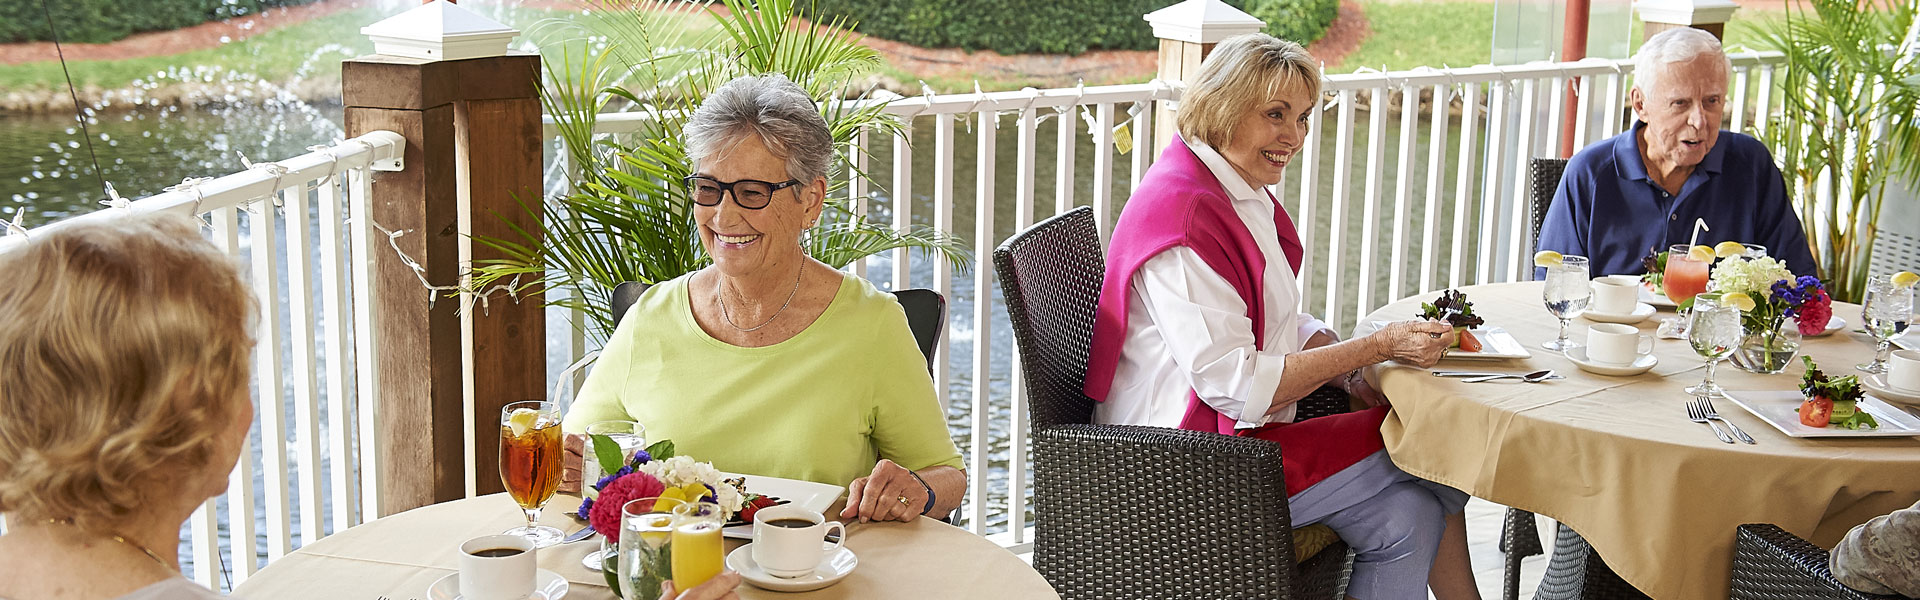 Residents of The Waterford sitting outside enjoying a meal